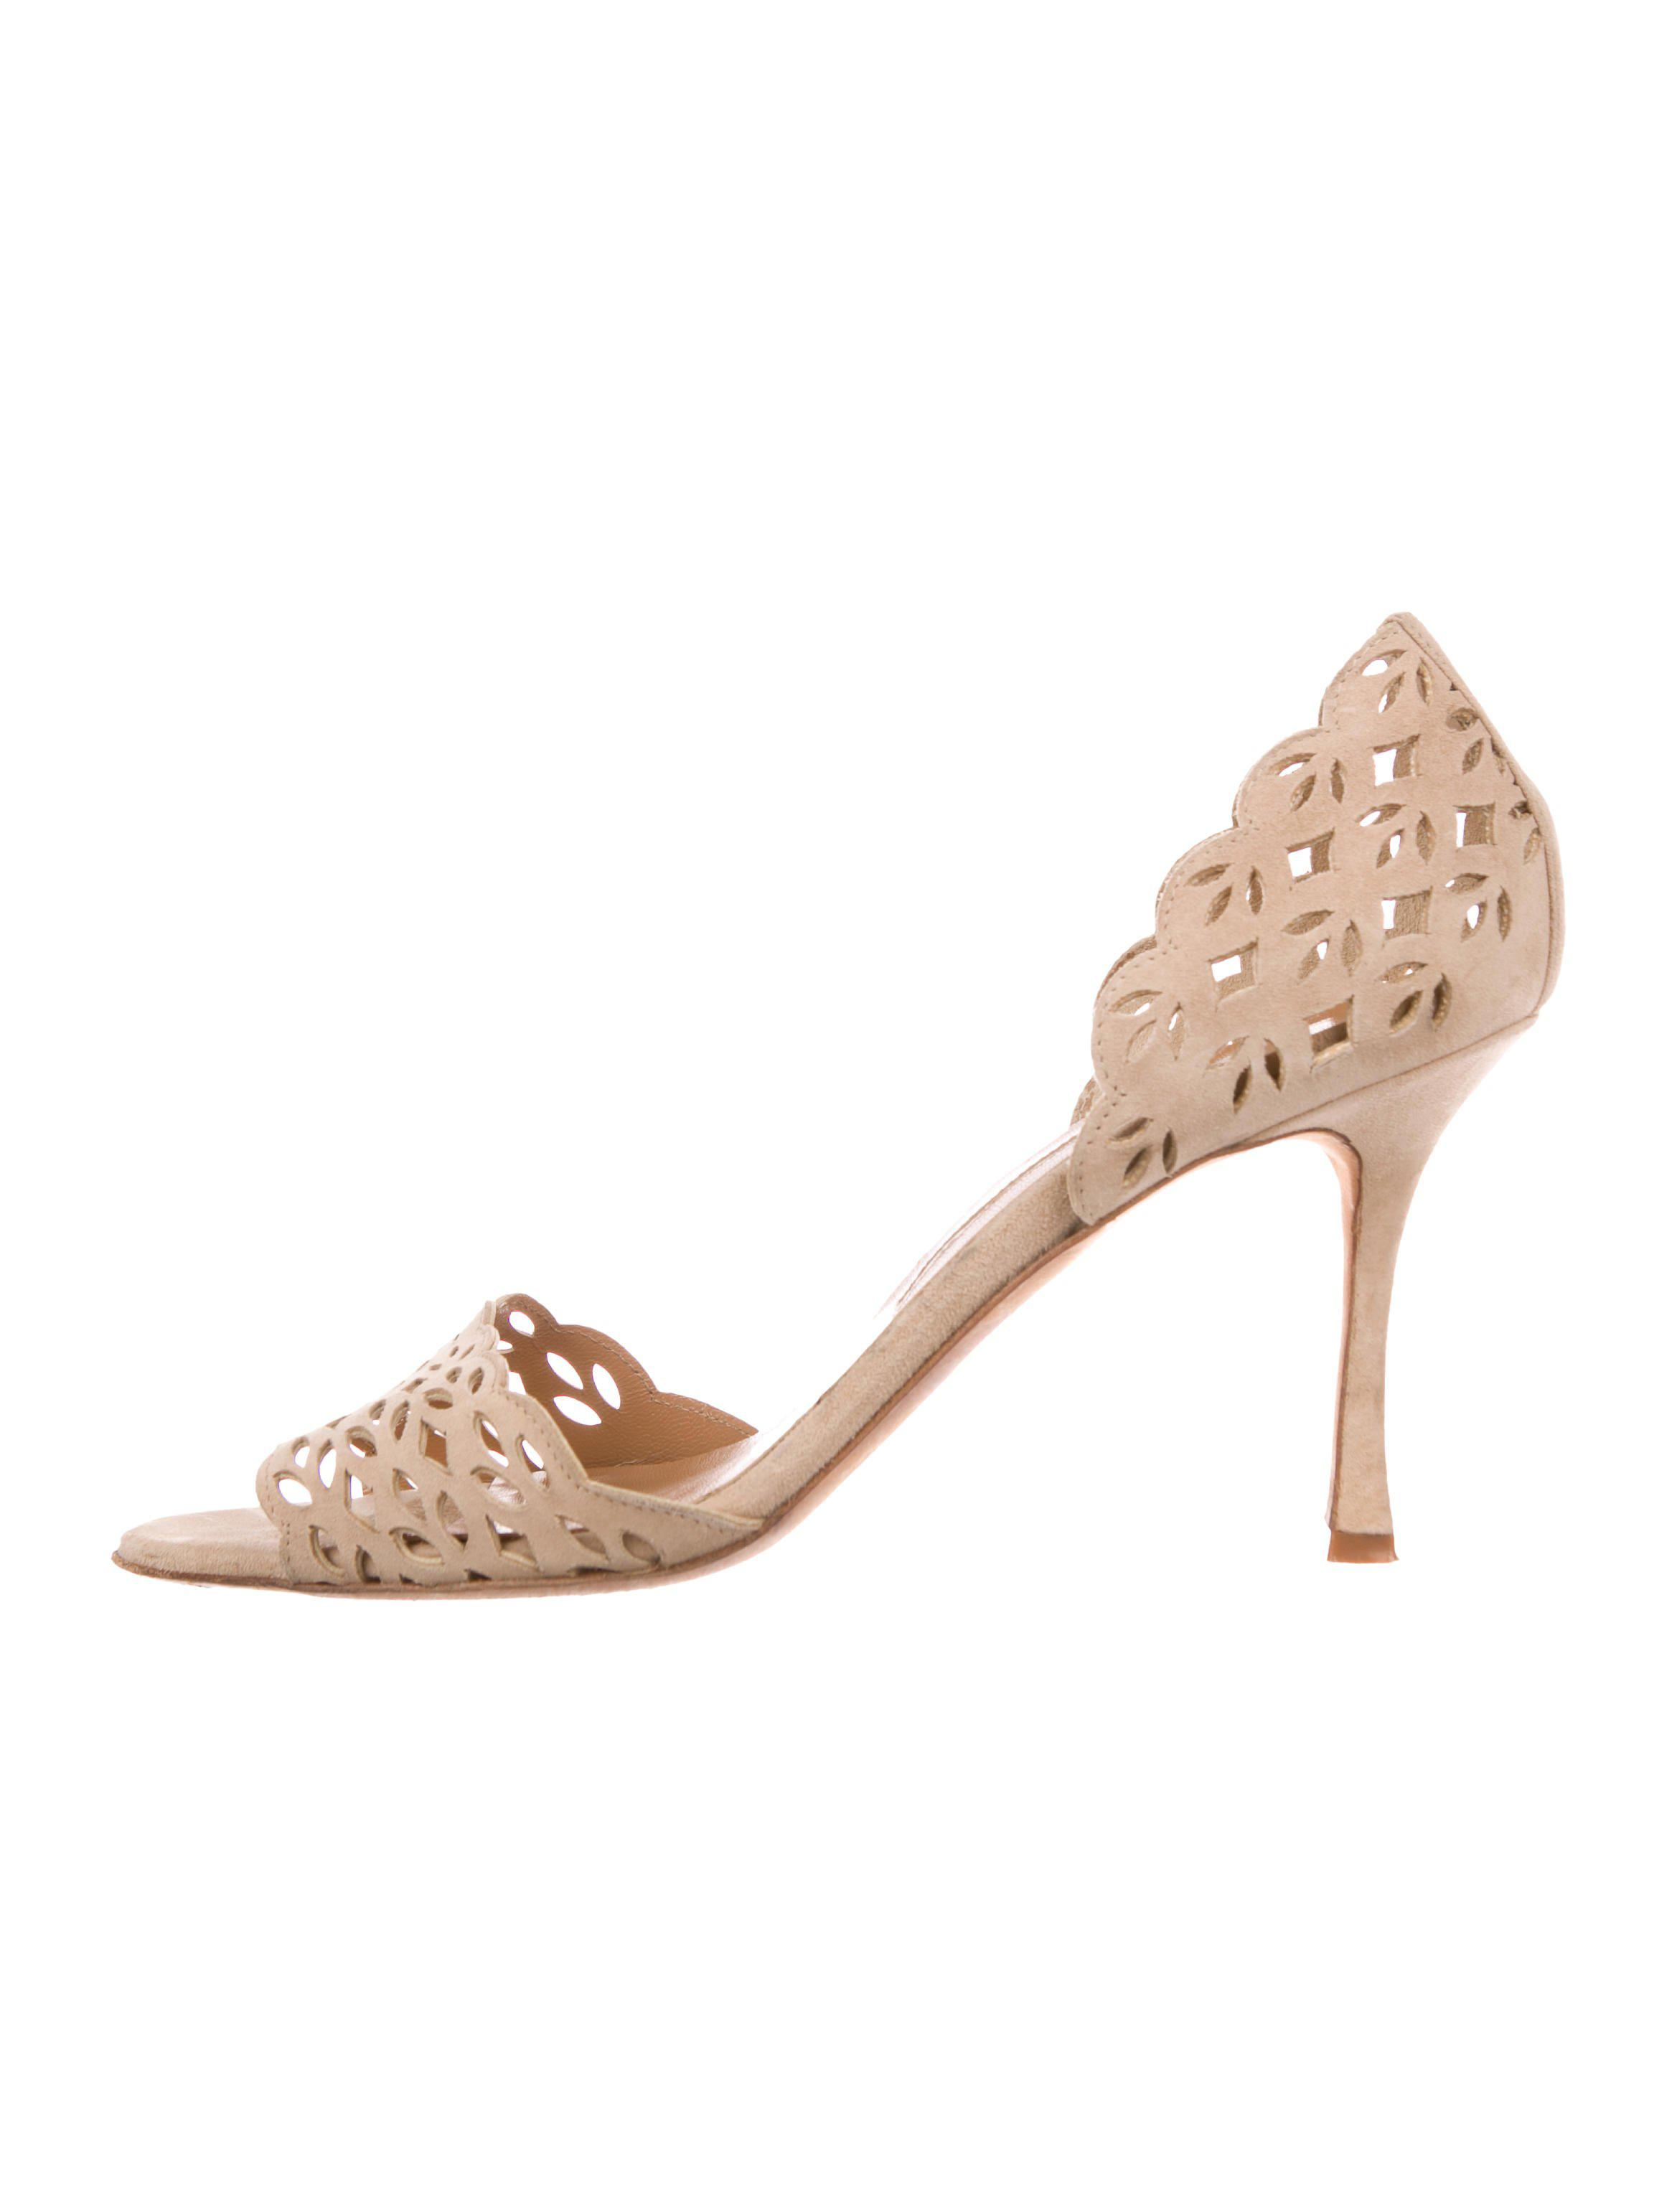 Manolo Blahnik Laser Cut Suede Sandals free shipping marketable largest supplier cheap price cheap sale outlet free shipping countdown package HsGSwOnc8